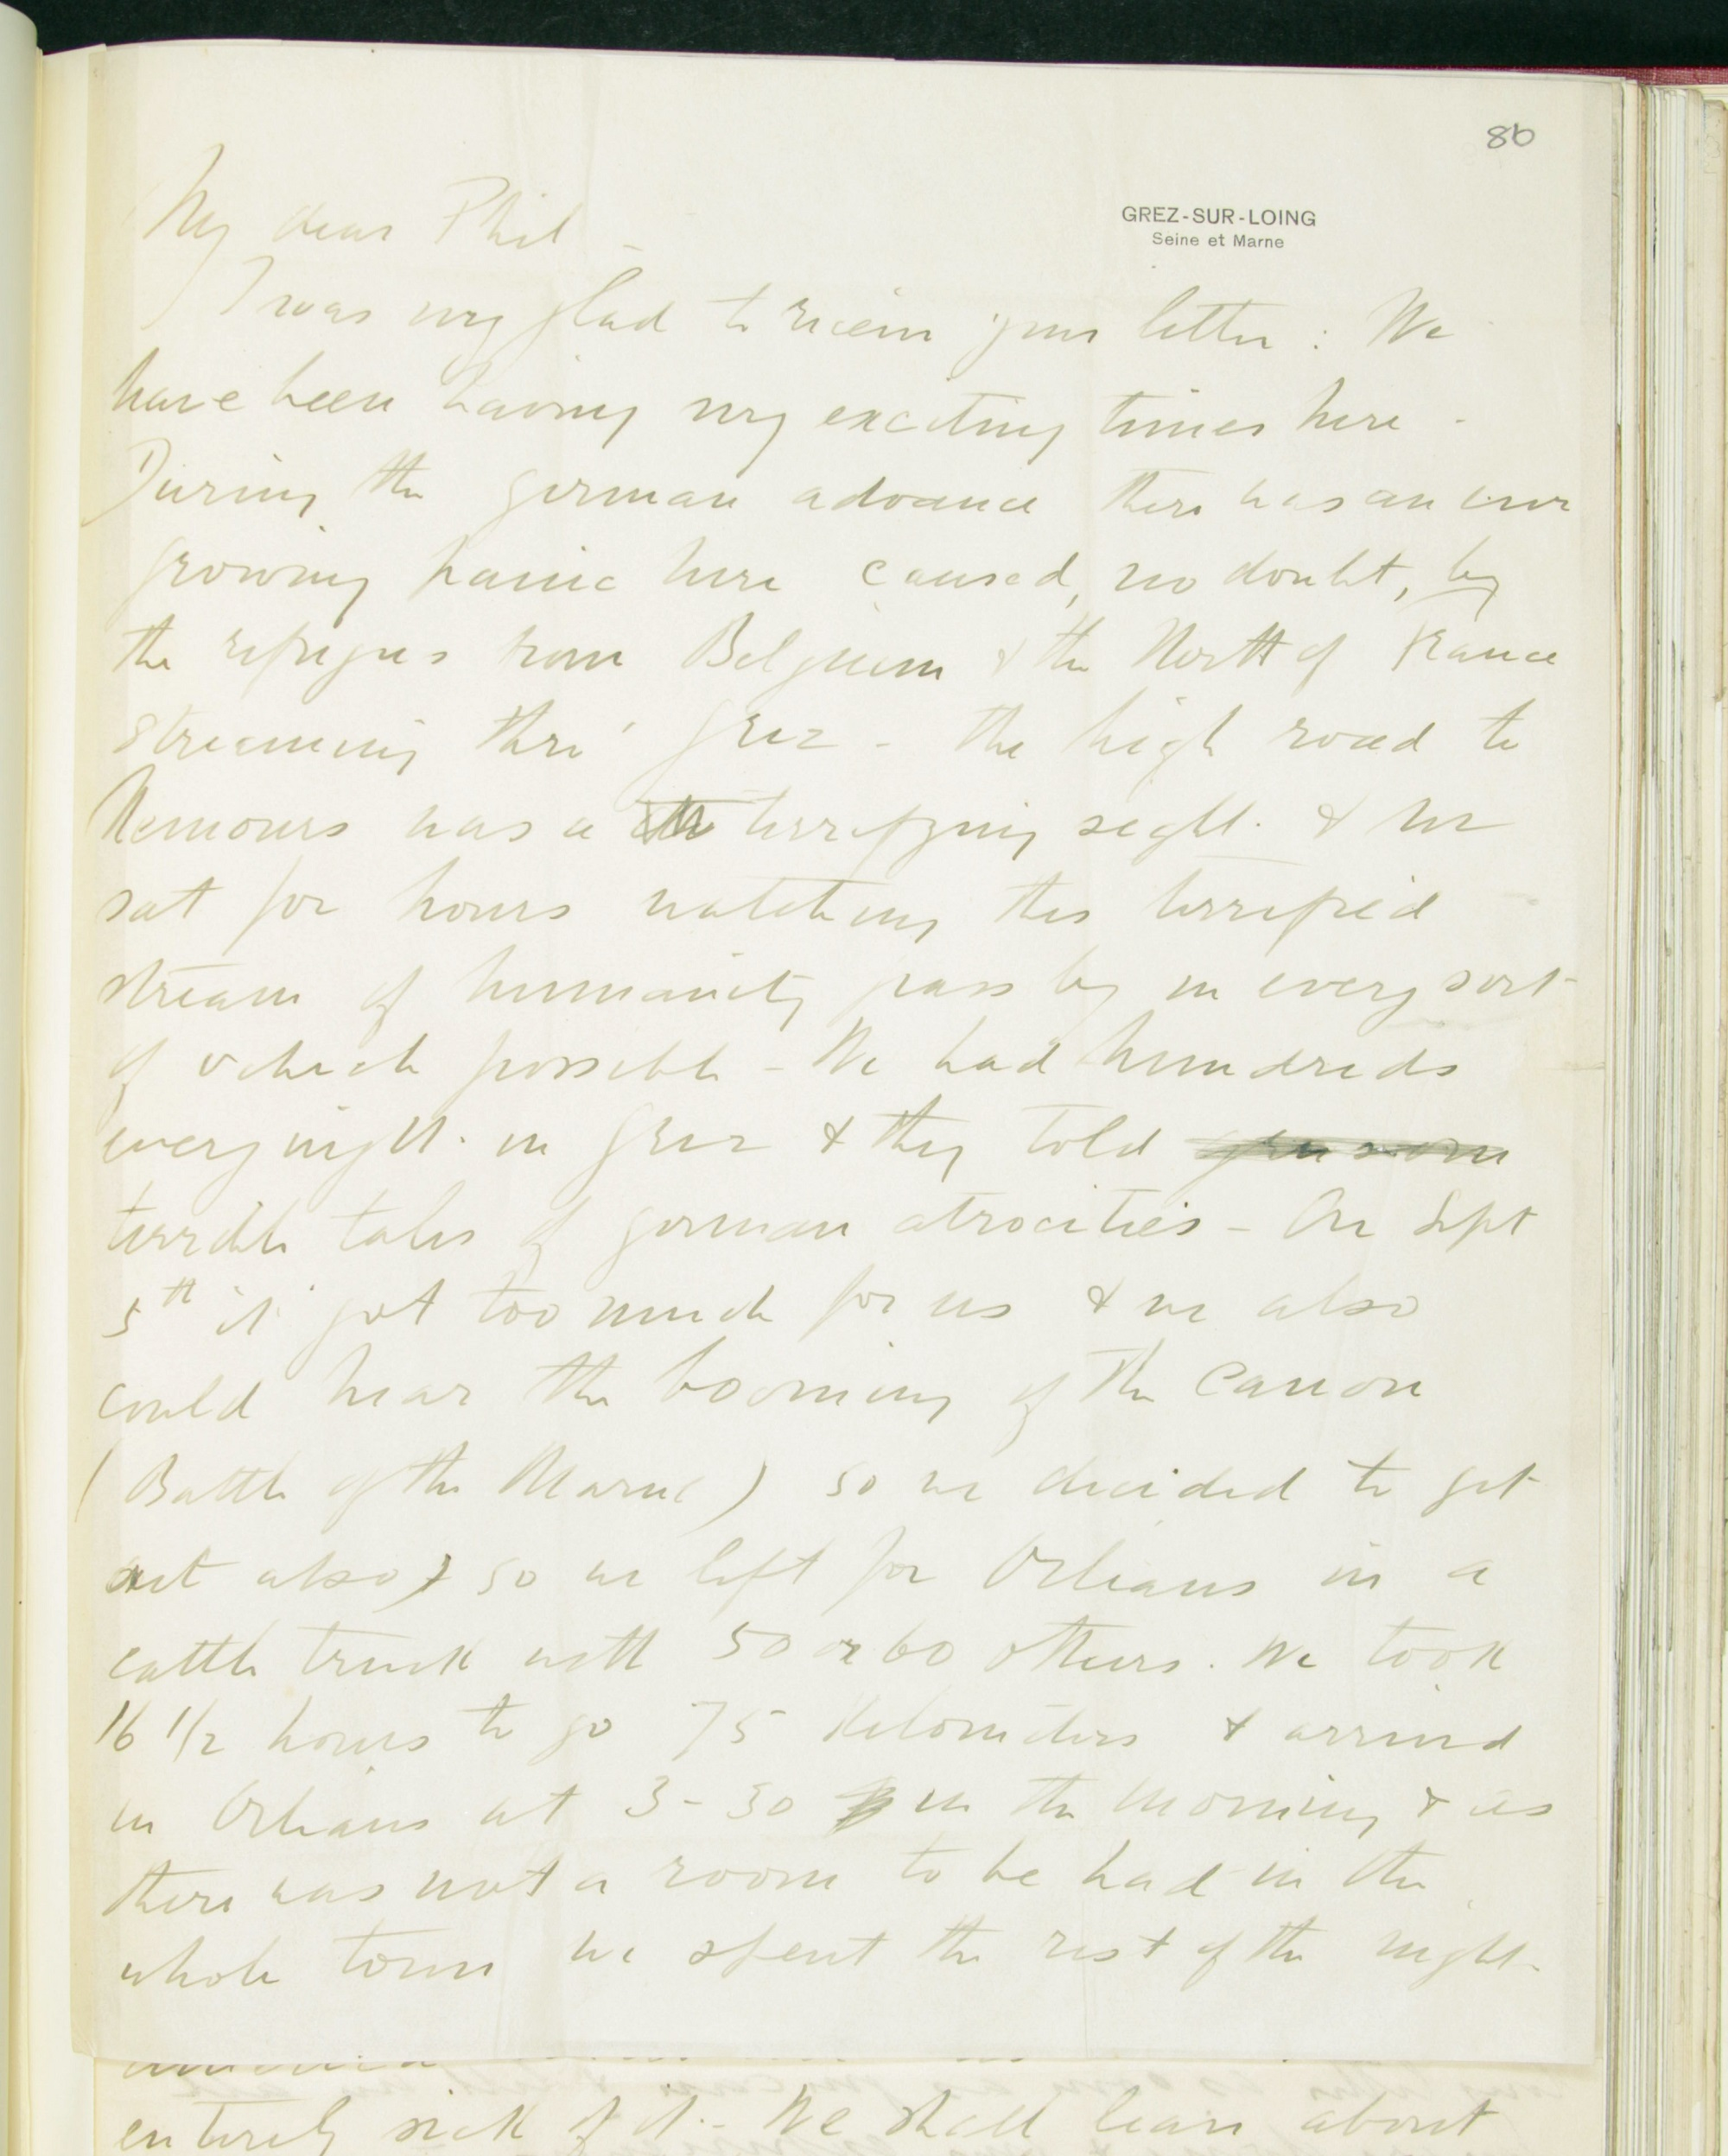 Frederick Delius, Letter to Philip Heseltine, 26 October 1914, f. 86r